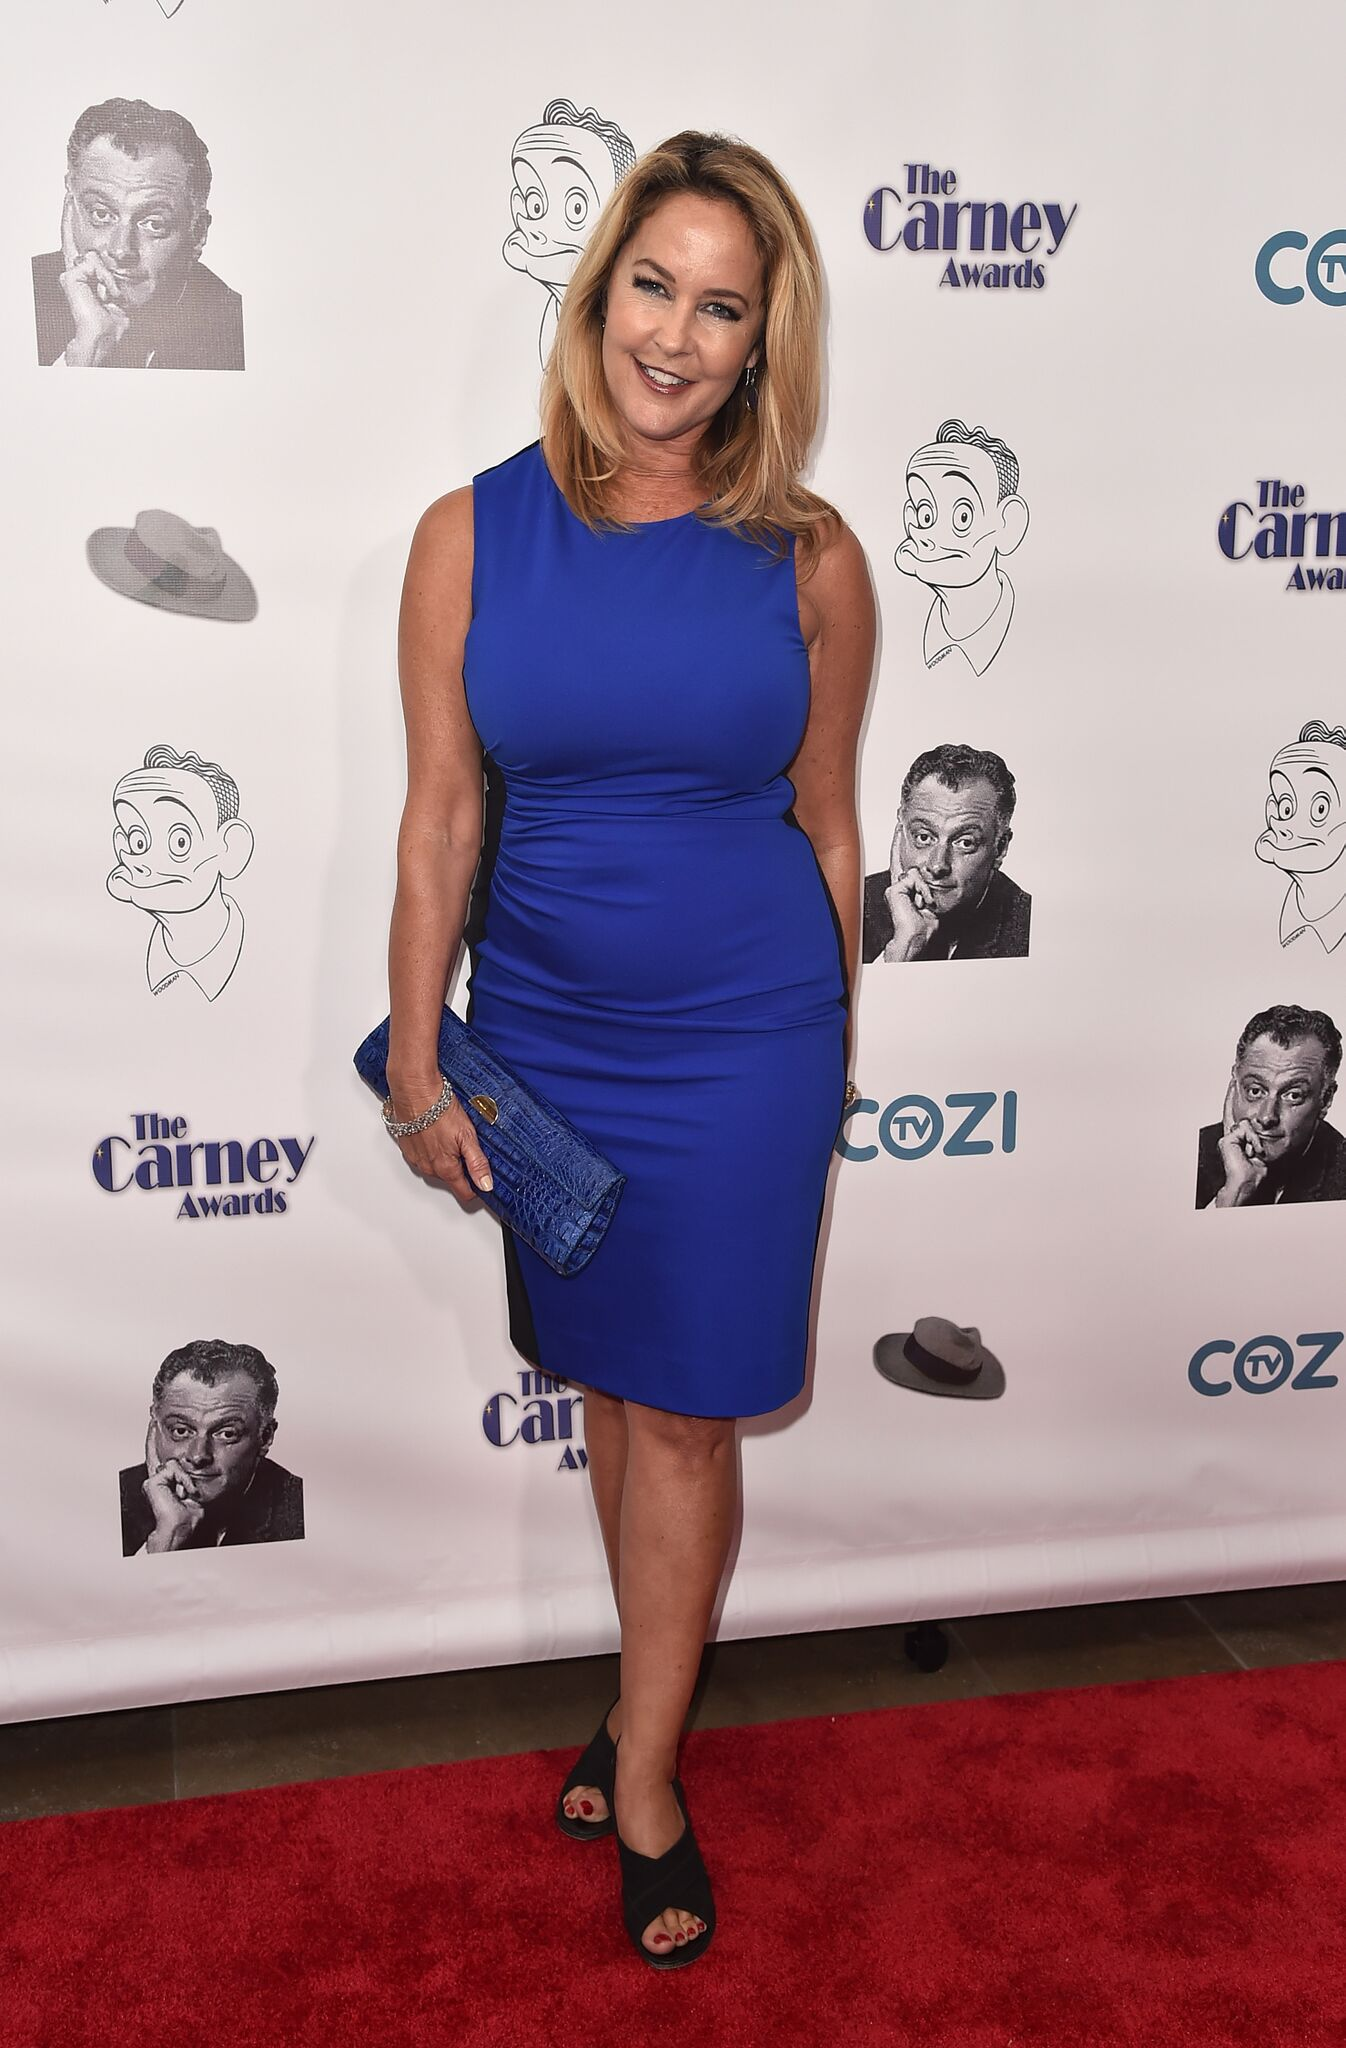 Erin Murphy assiste aux 3e Carney Awards annuels | Getty Images